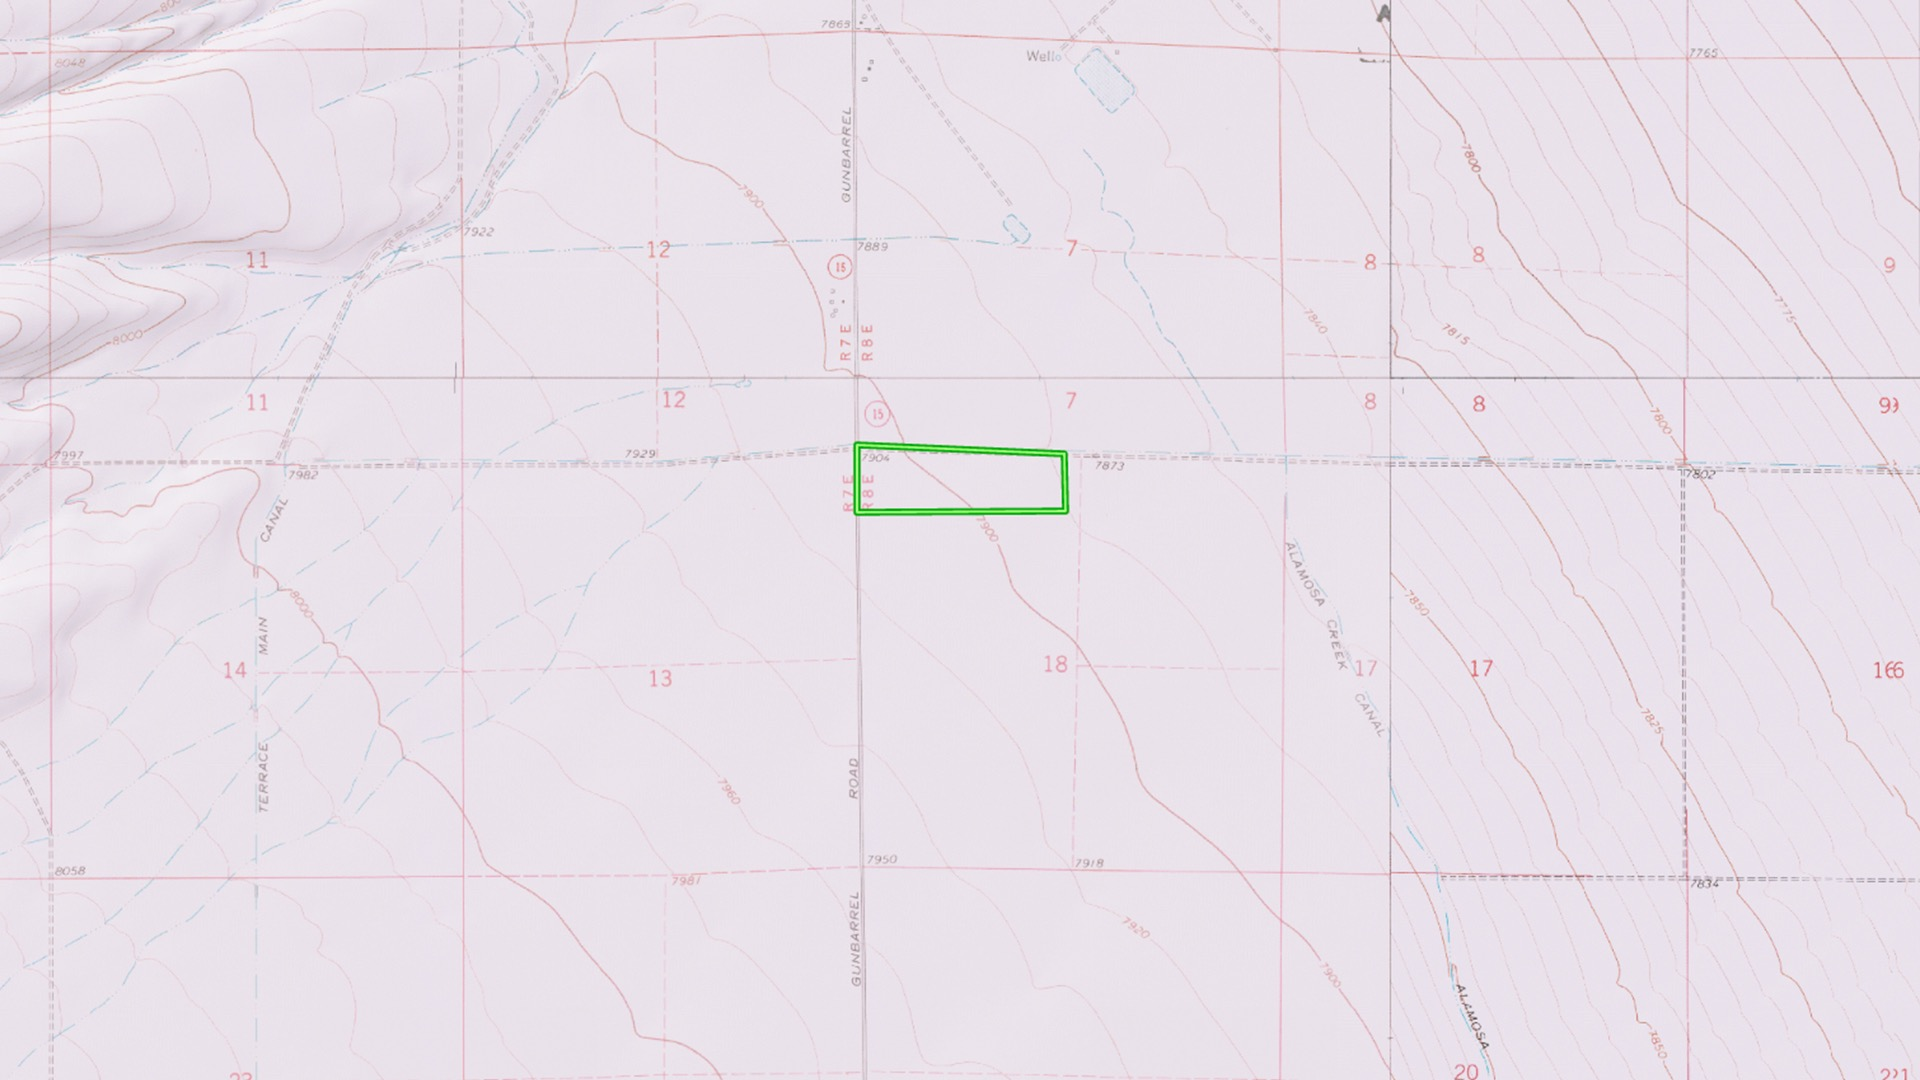 Topographical Map : 7,900 ft elevation